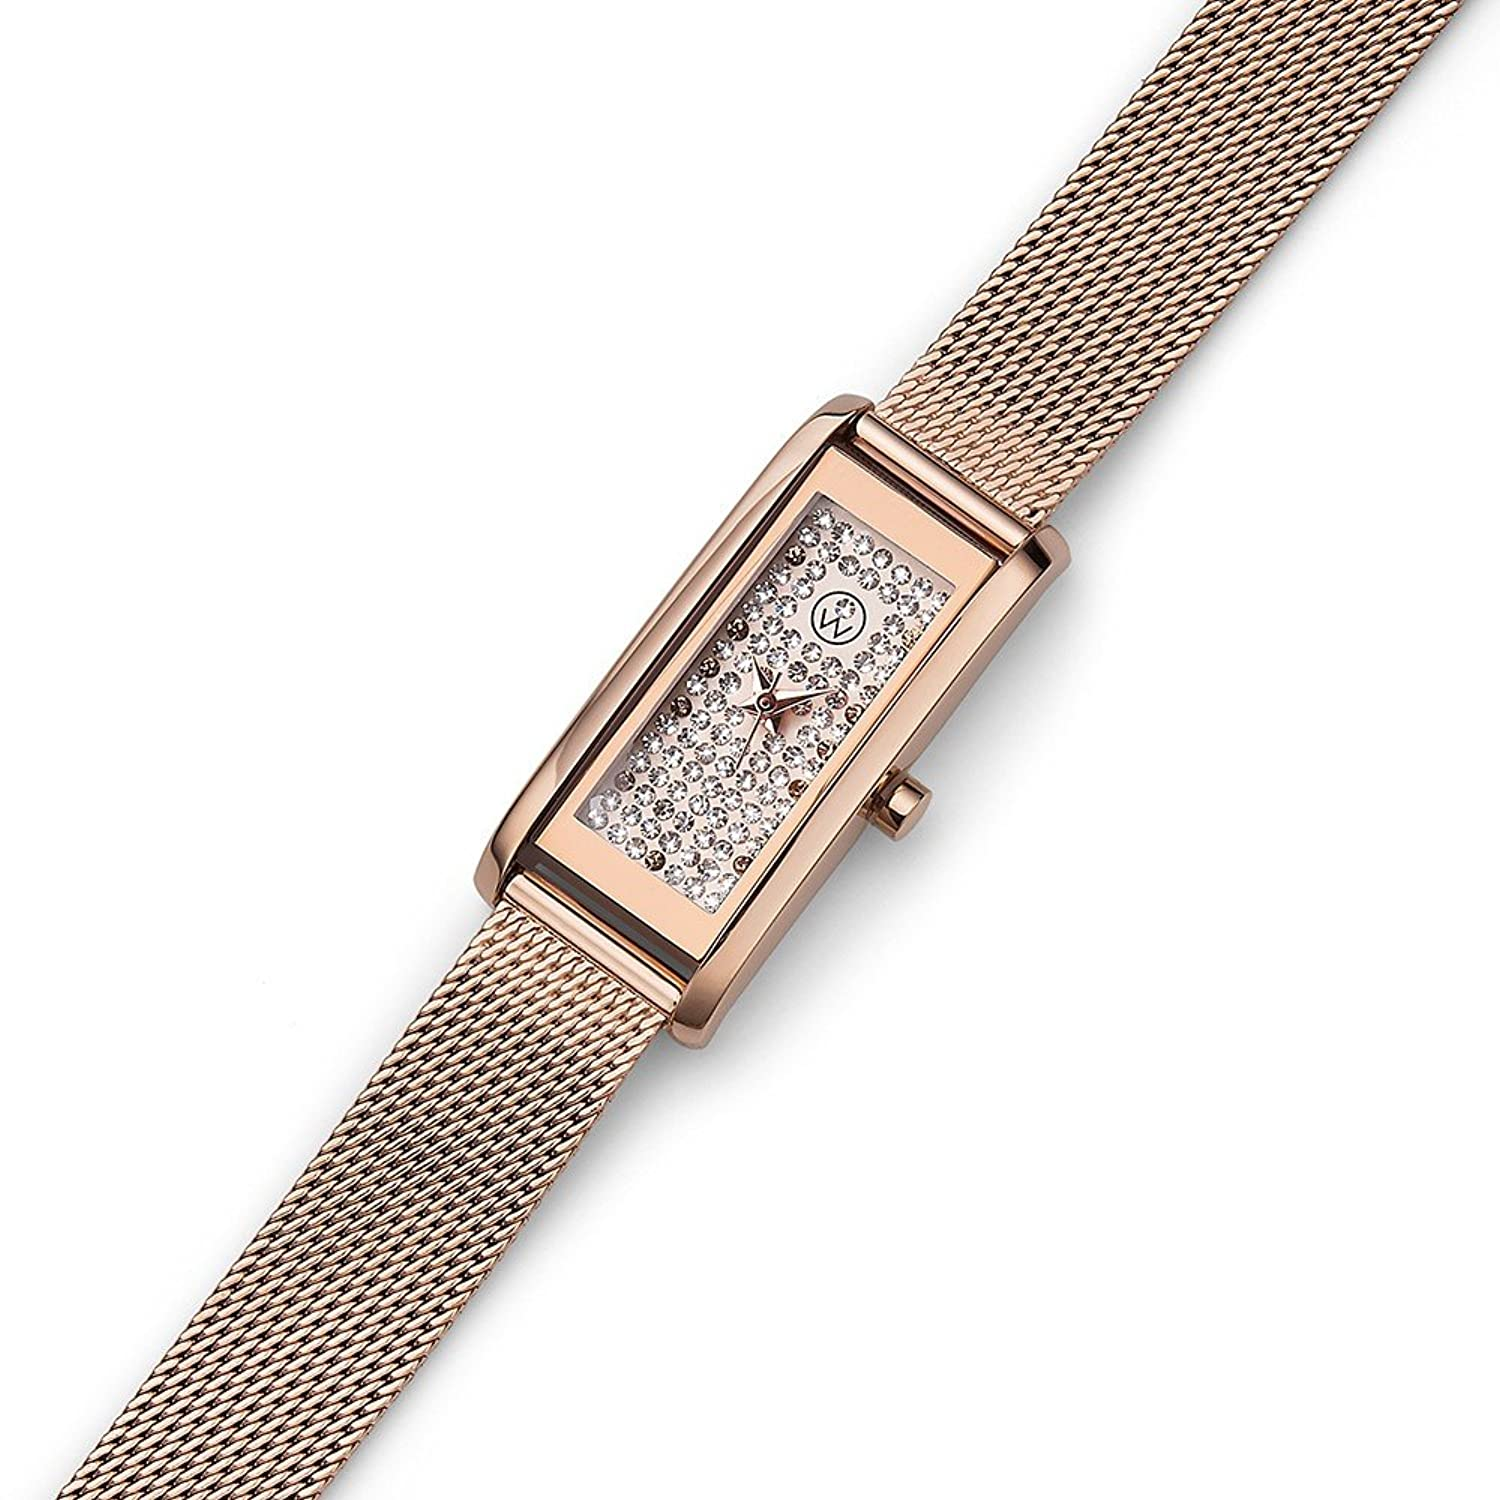 Oliver Weber Uhr Monaco rosegold with Crystals from Swarovski Damen